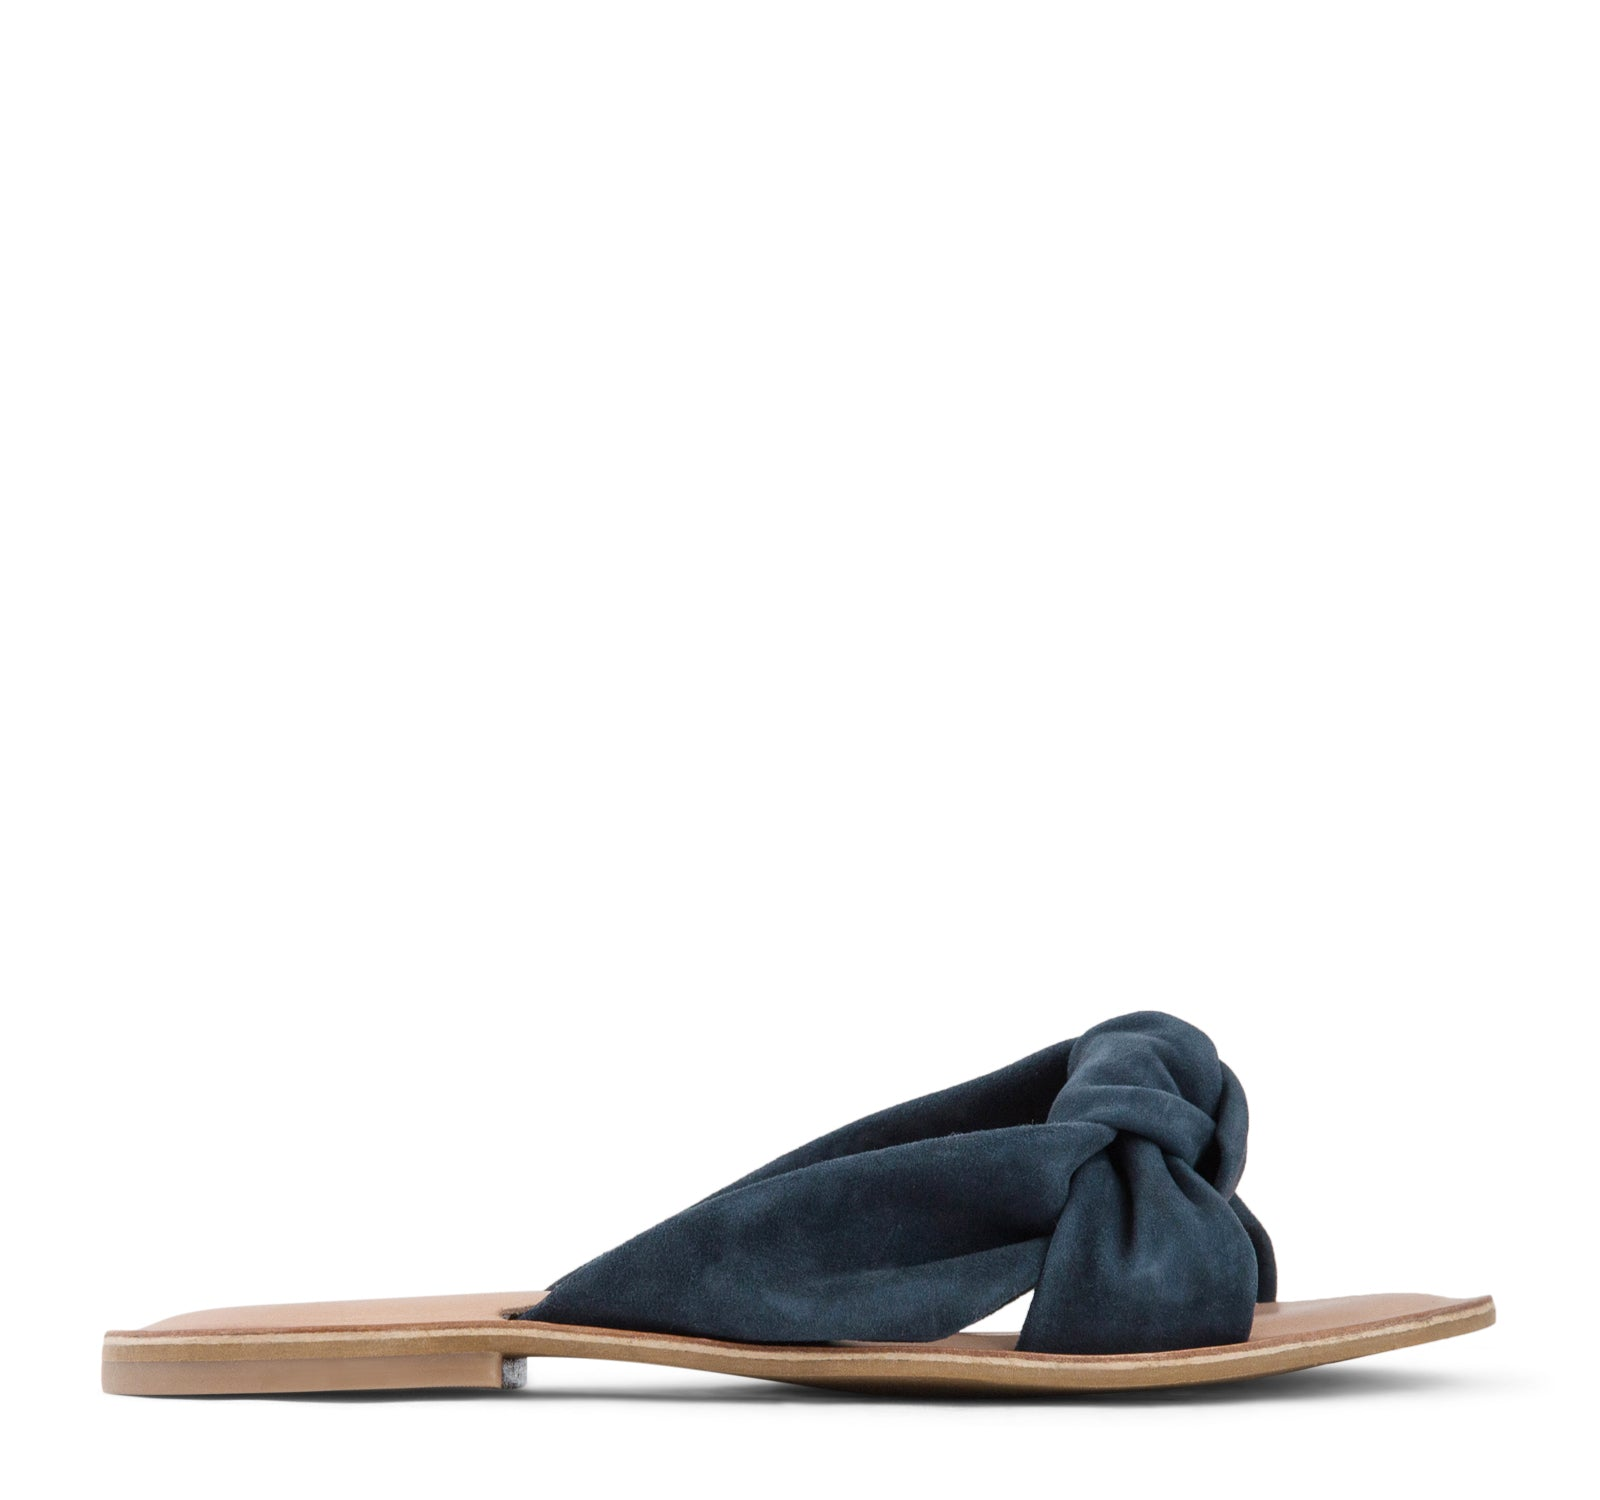 Jeffrey Campbell Zocalo Slide Sandal Women's - Navy Suede - Jeffrey Campbell - On The EDGE